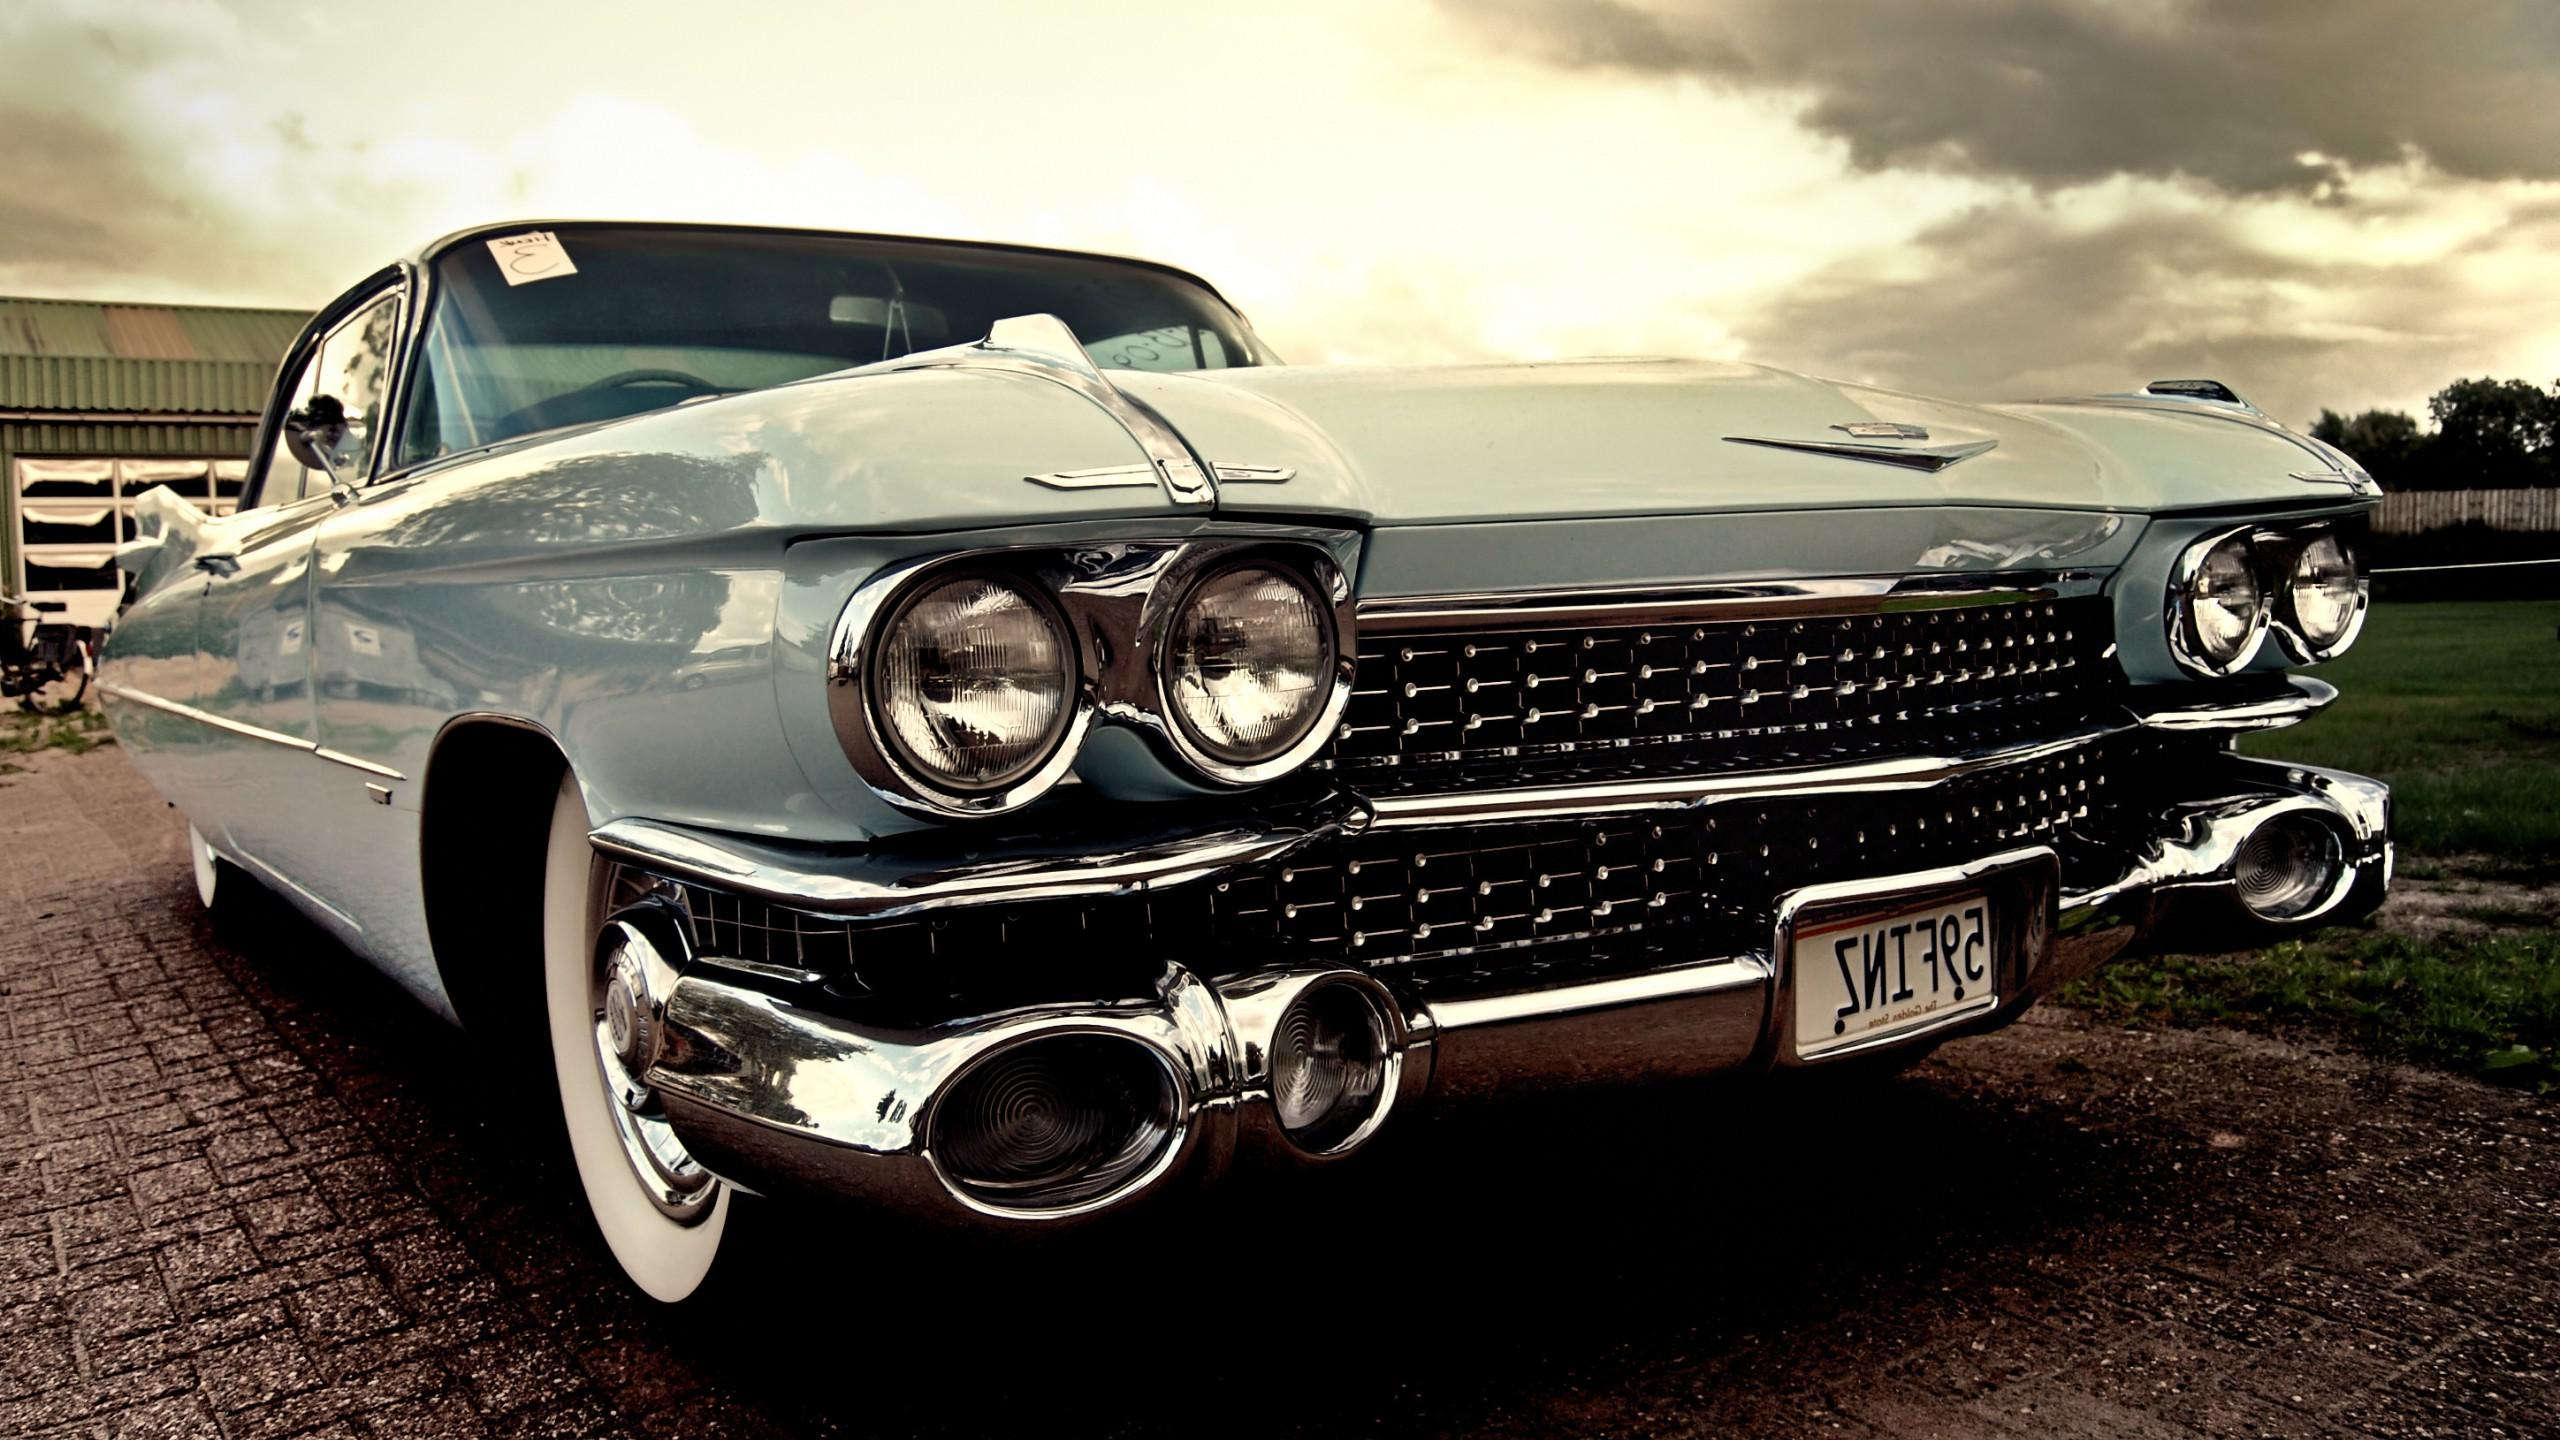 American Muscle Car Mobile Wallpaper Hd Cadillac Vintage Car Wallpapers Hd Desktop And Mobile